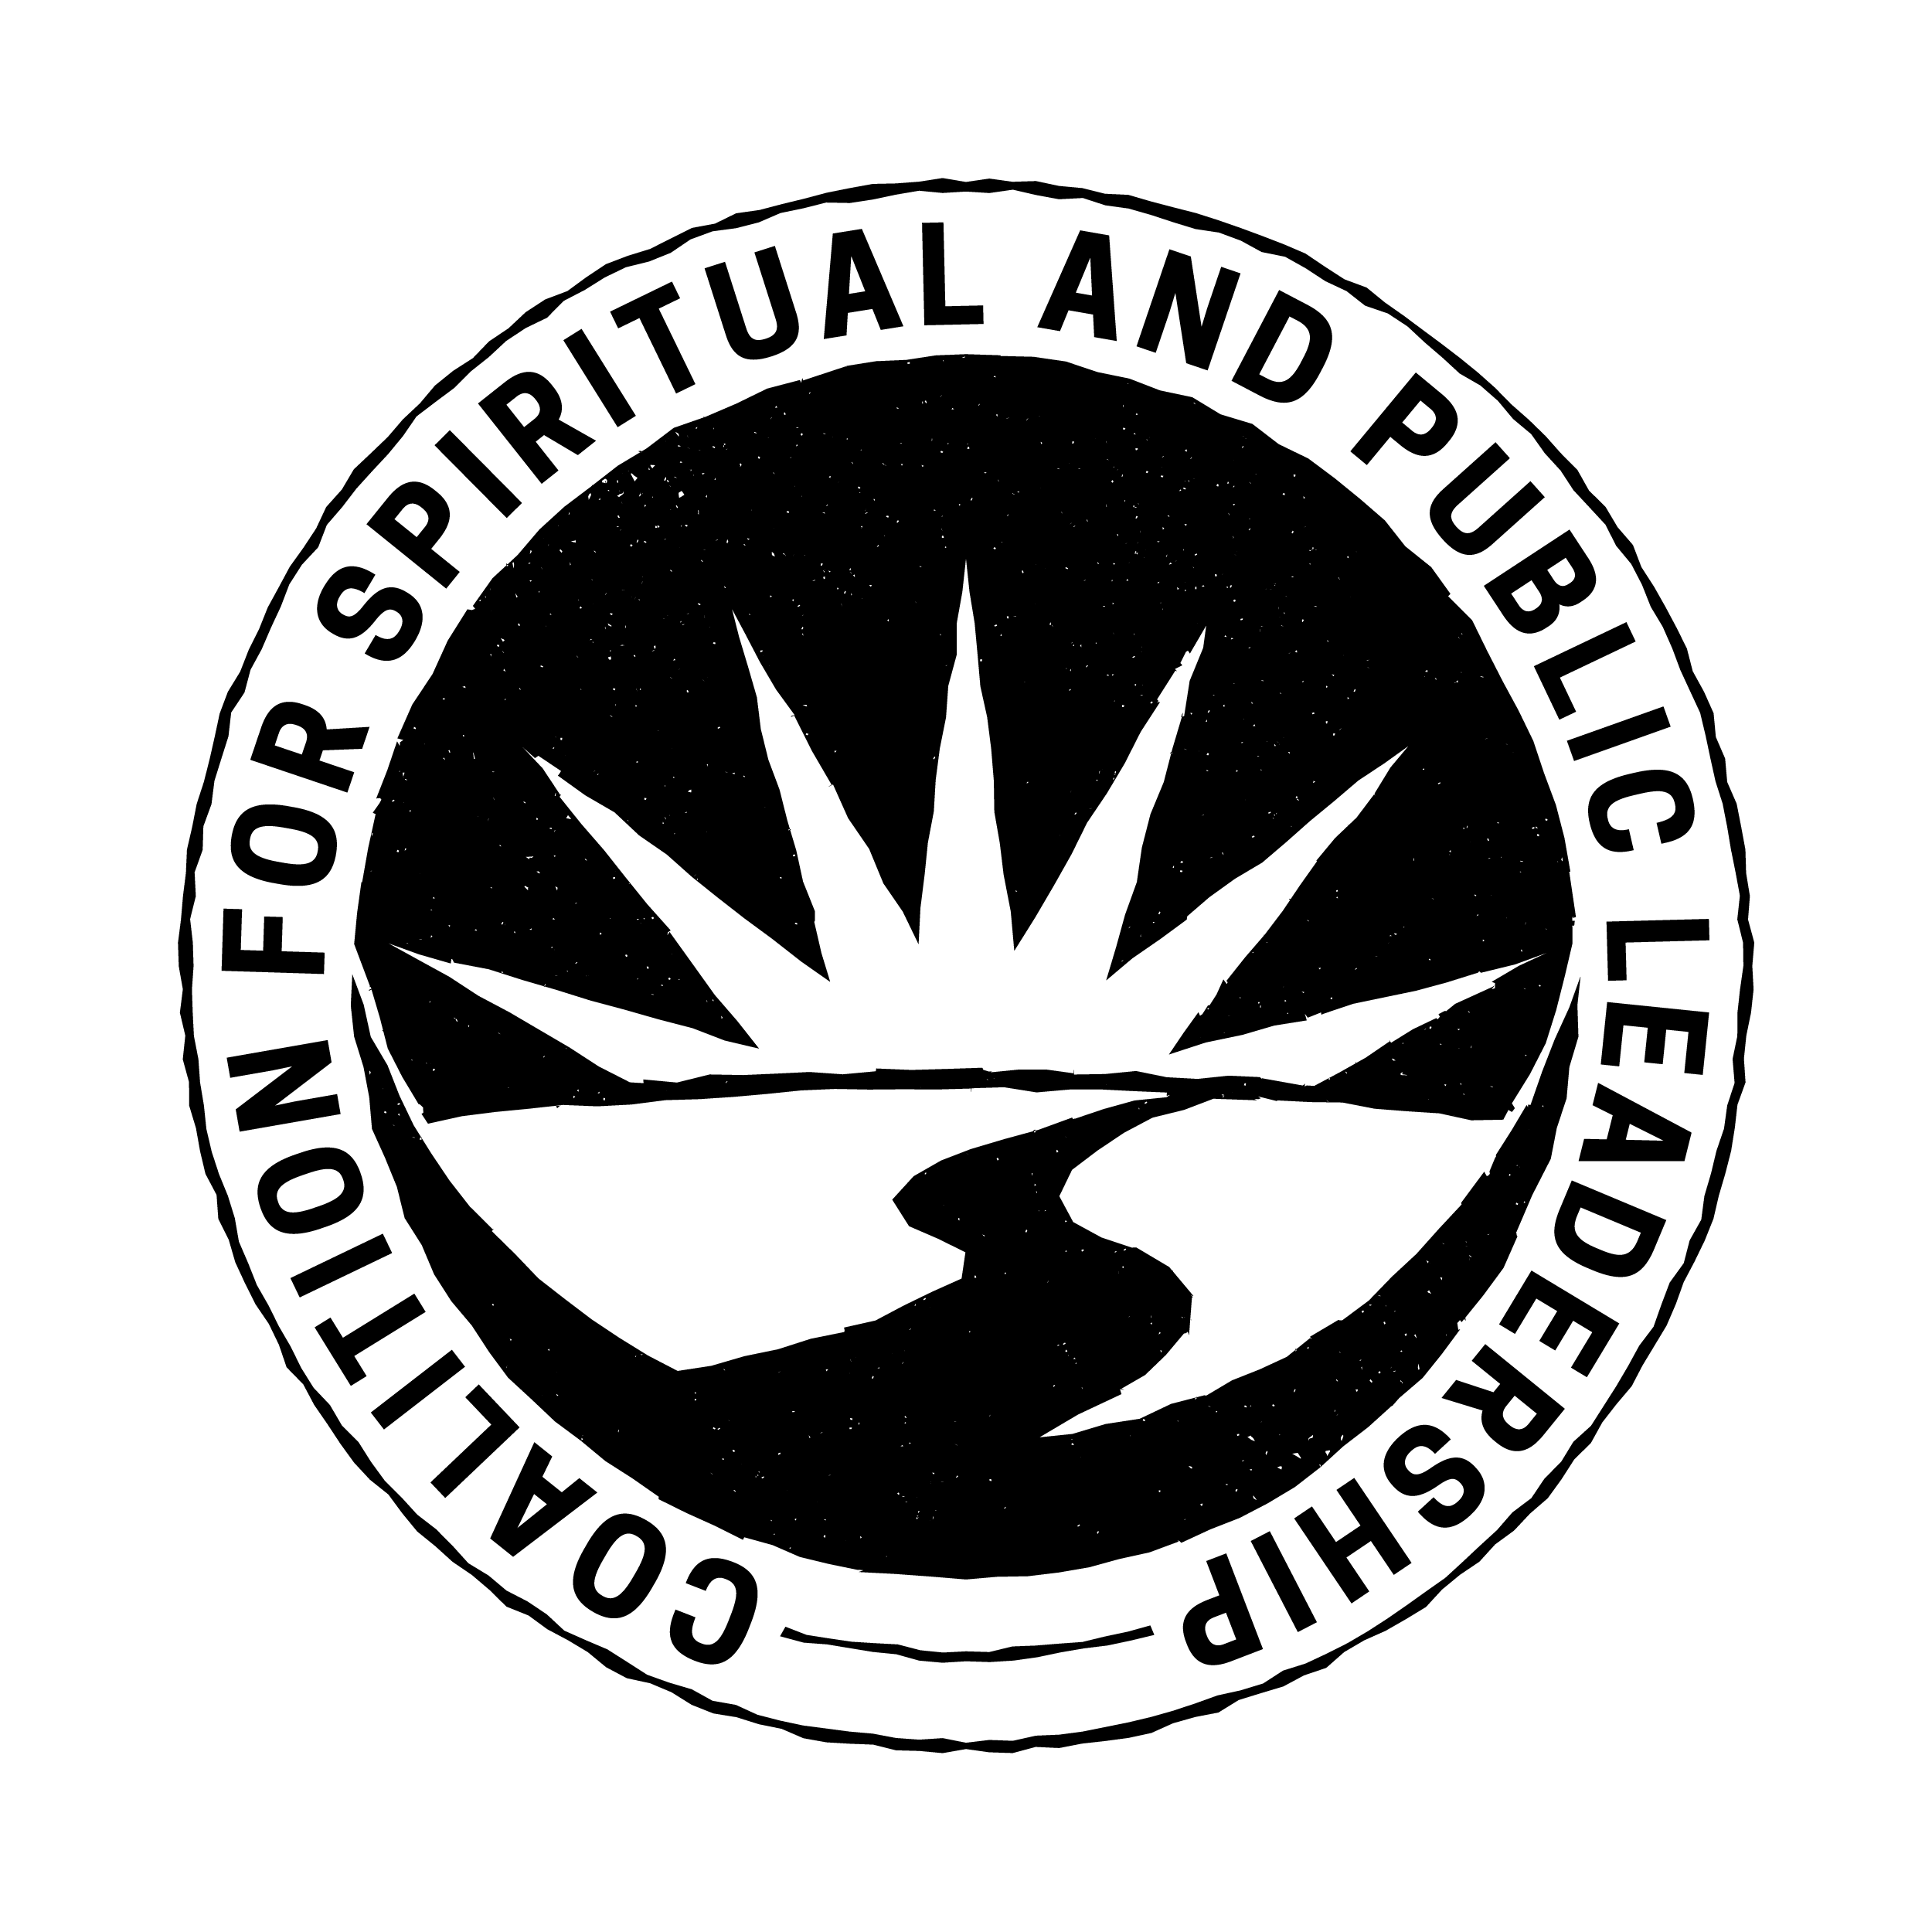 Unused artwork for Coalition for Spiritual and Public Leadership.